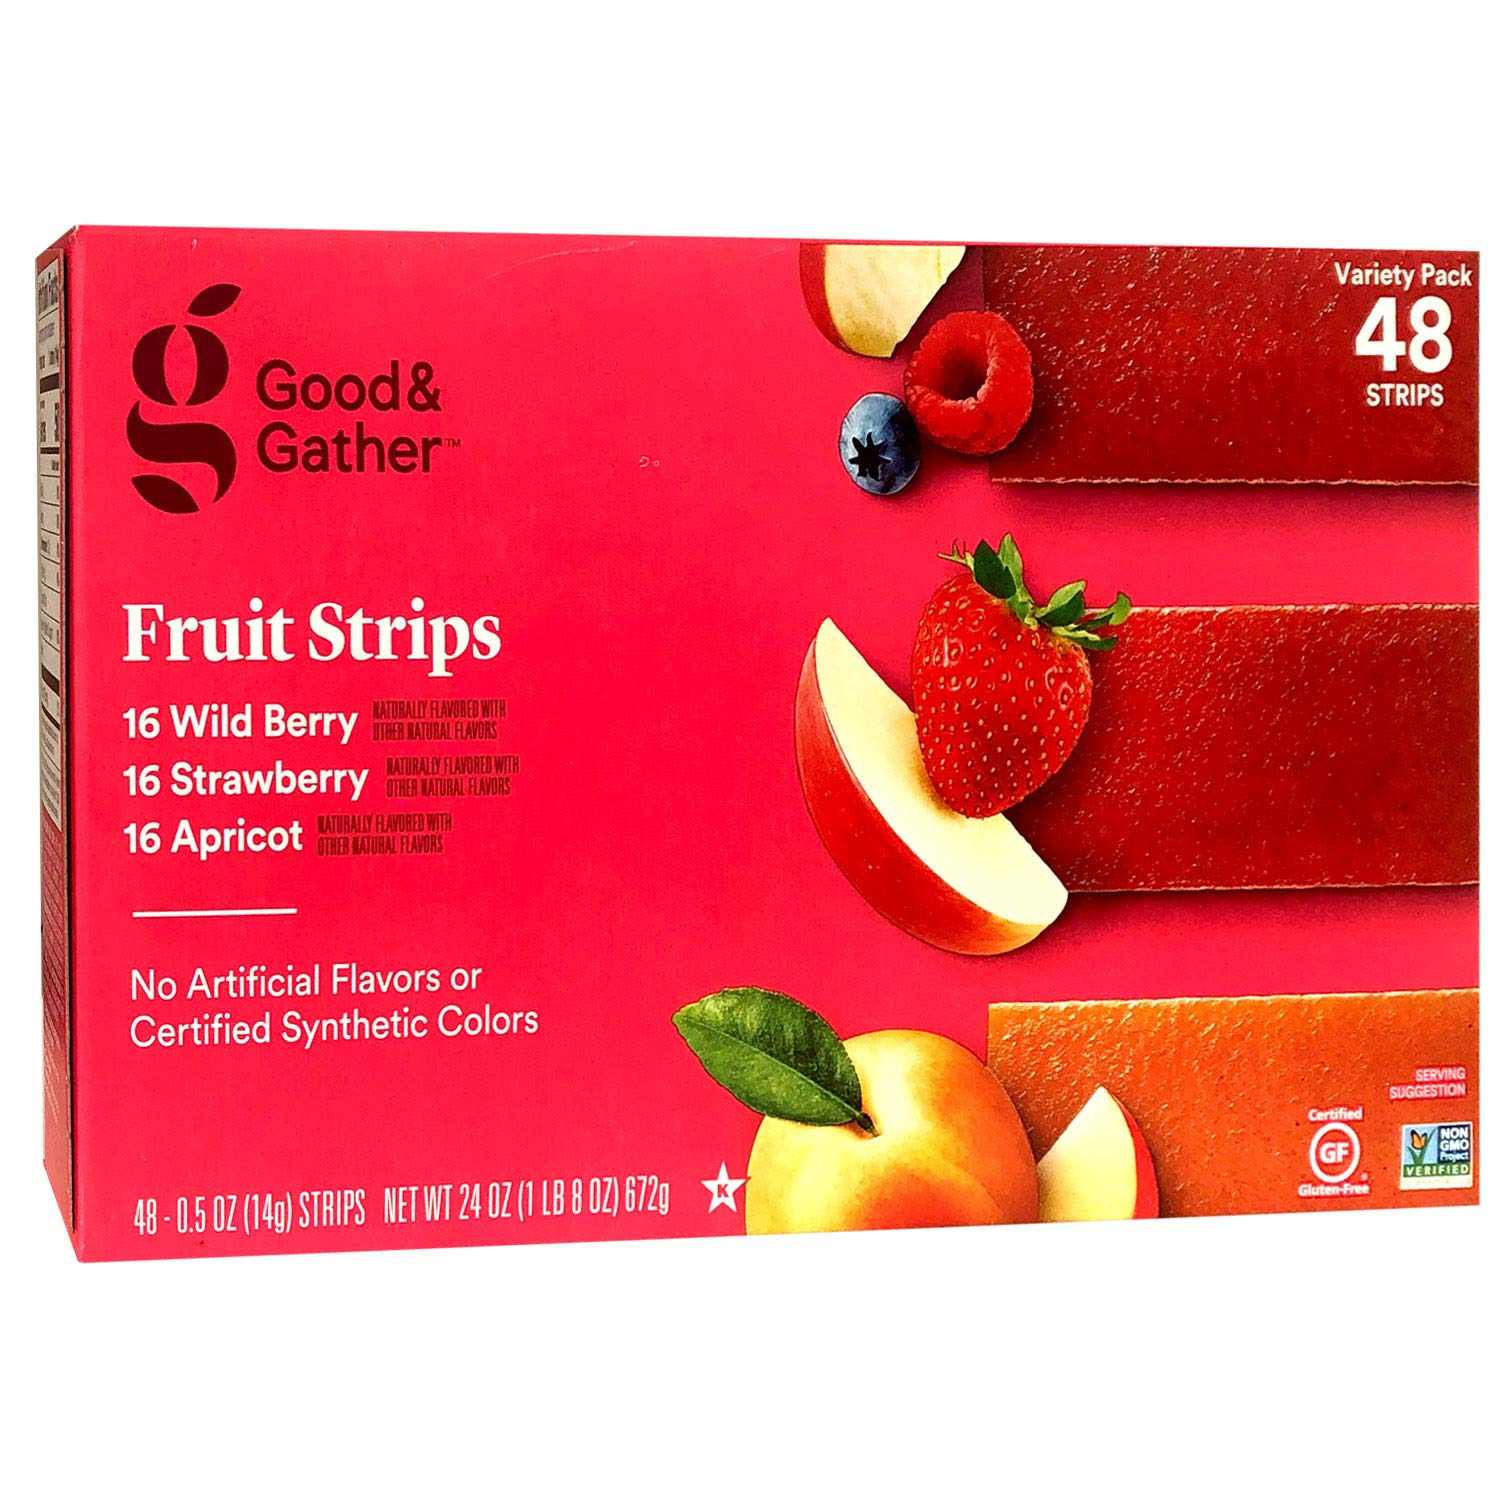 Fruit Strips Wild Berry Strawberry and Apricot Leathers Healthy Snack Made with Real Berry Puree Concentrate Good and Gather Variety Pack 48 Strips